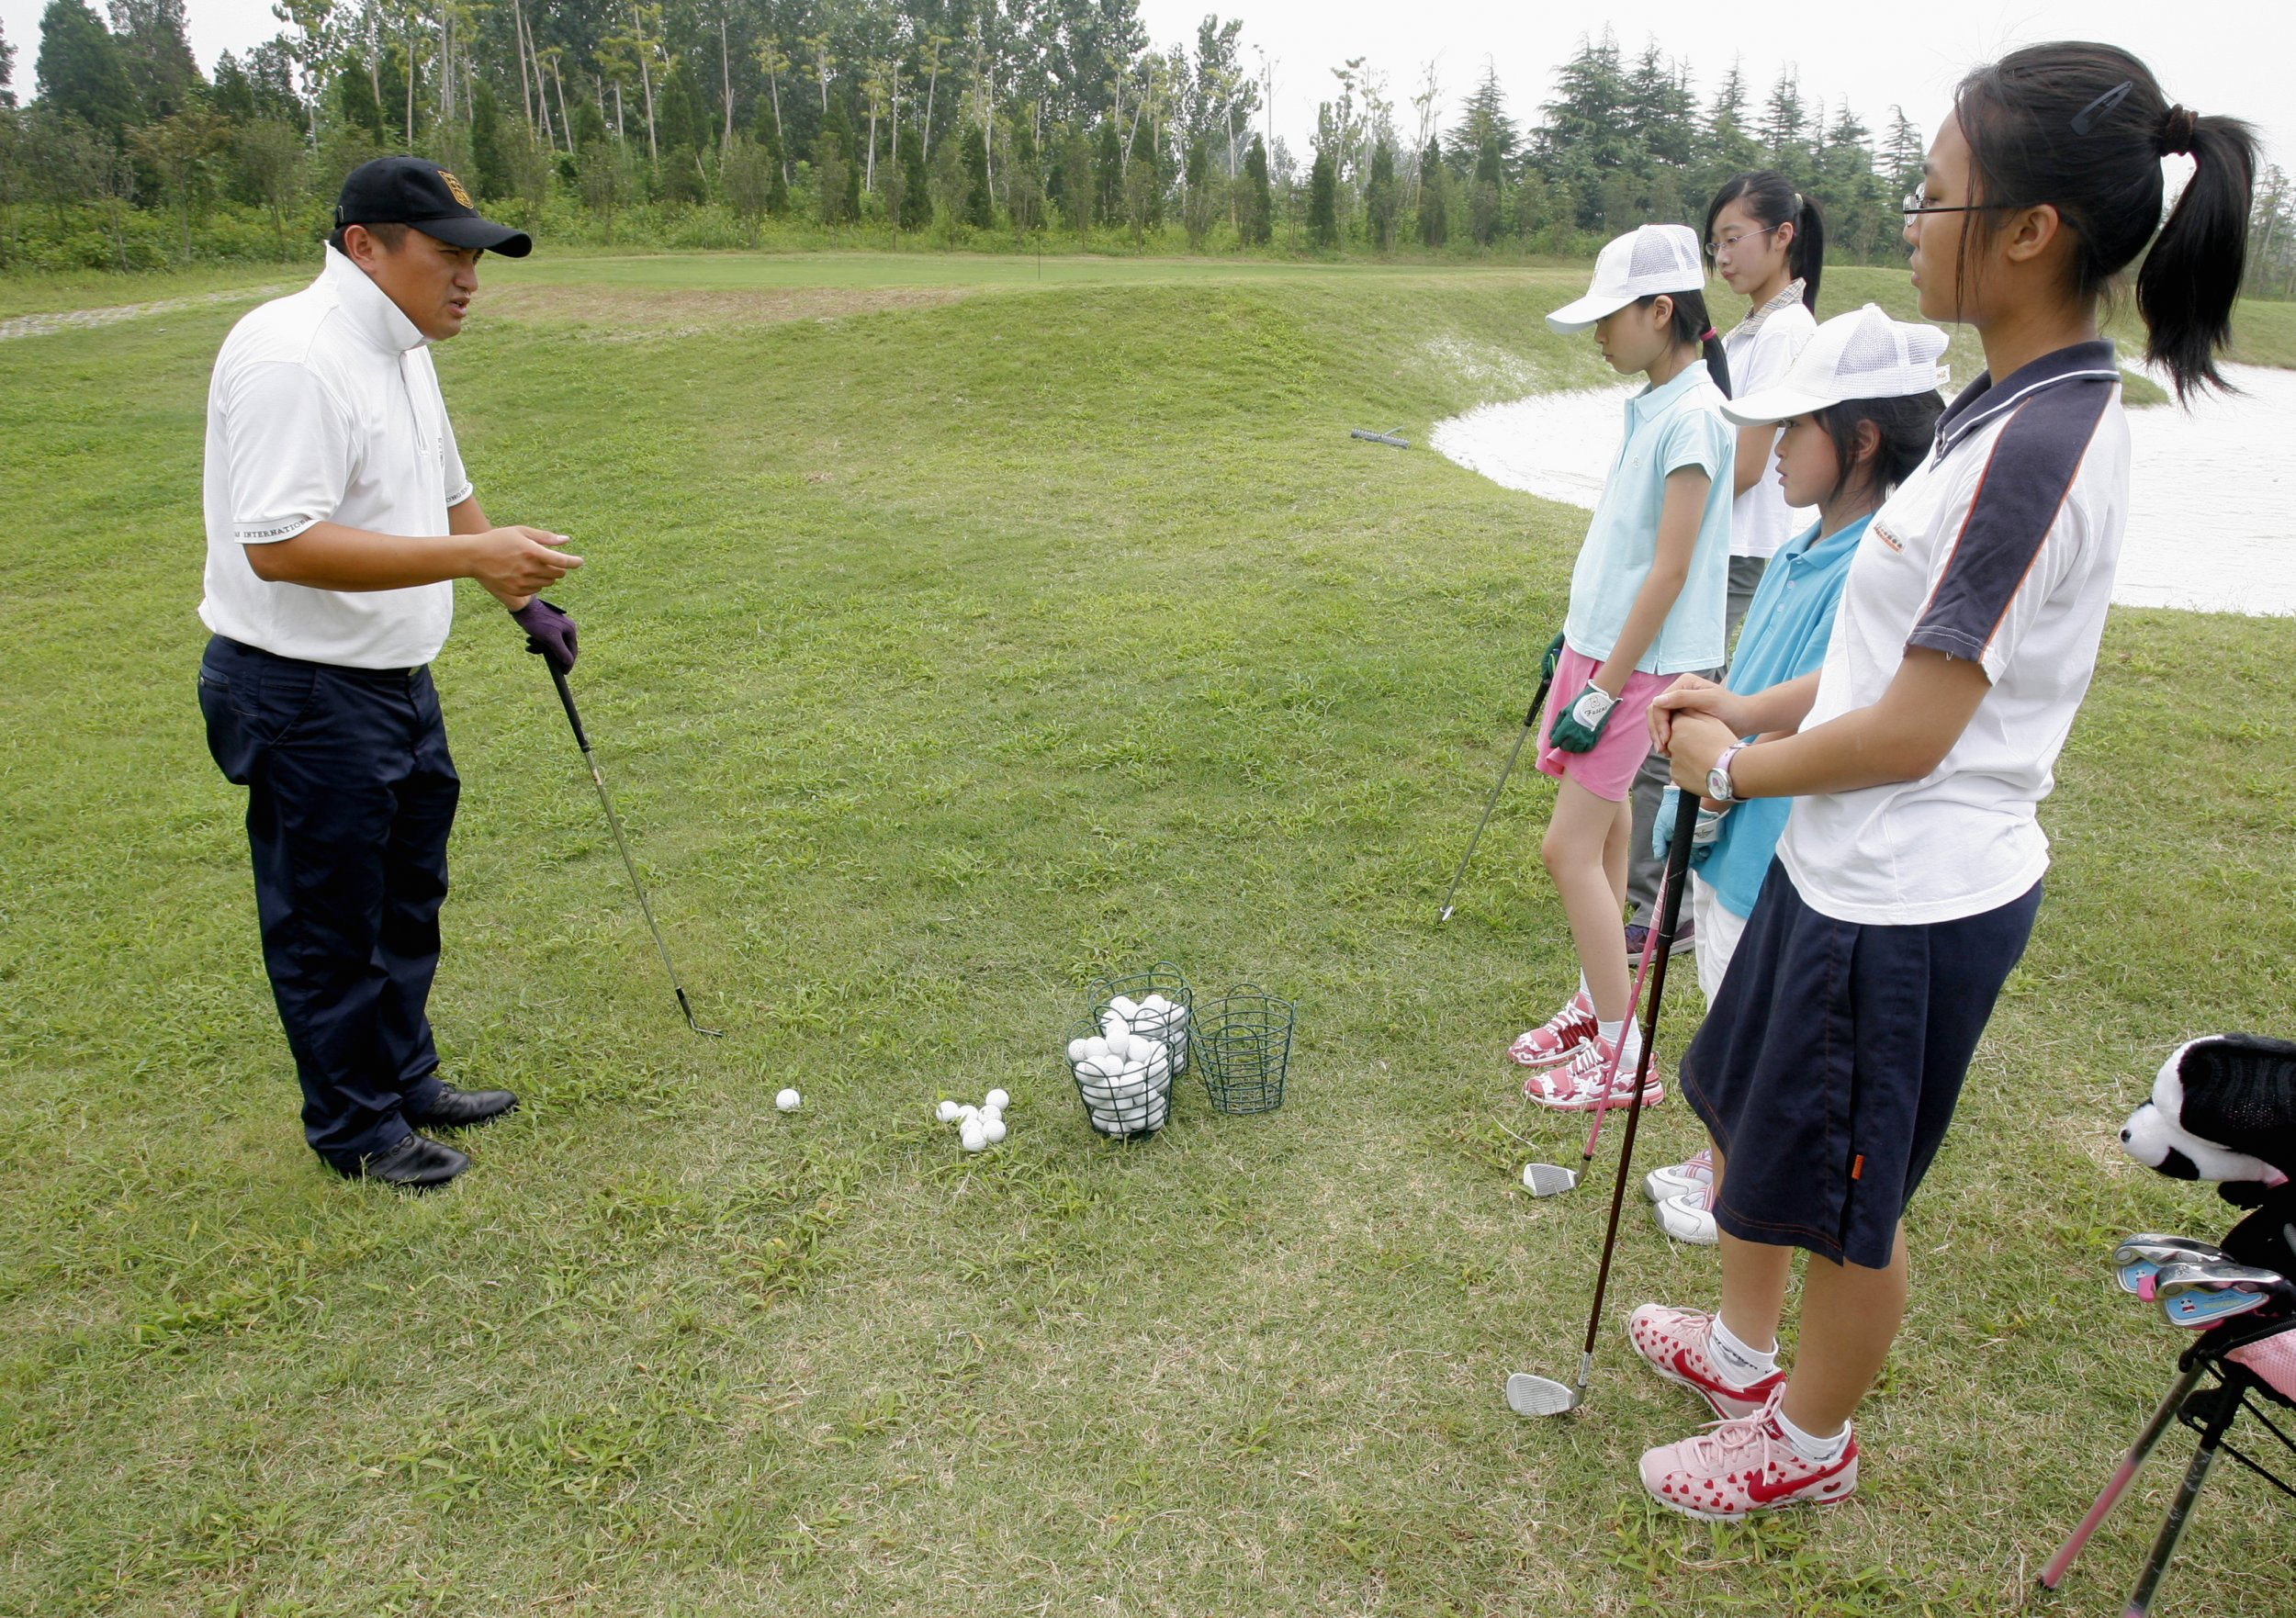 Chinese children take a golf lesson.